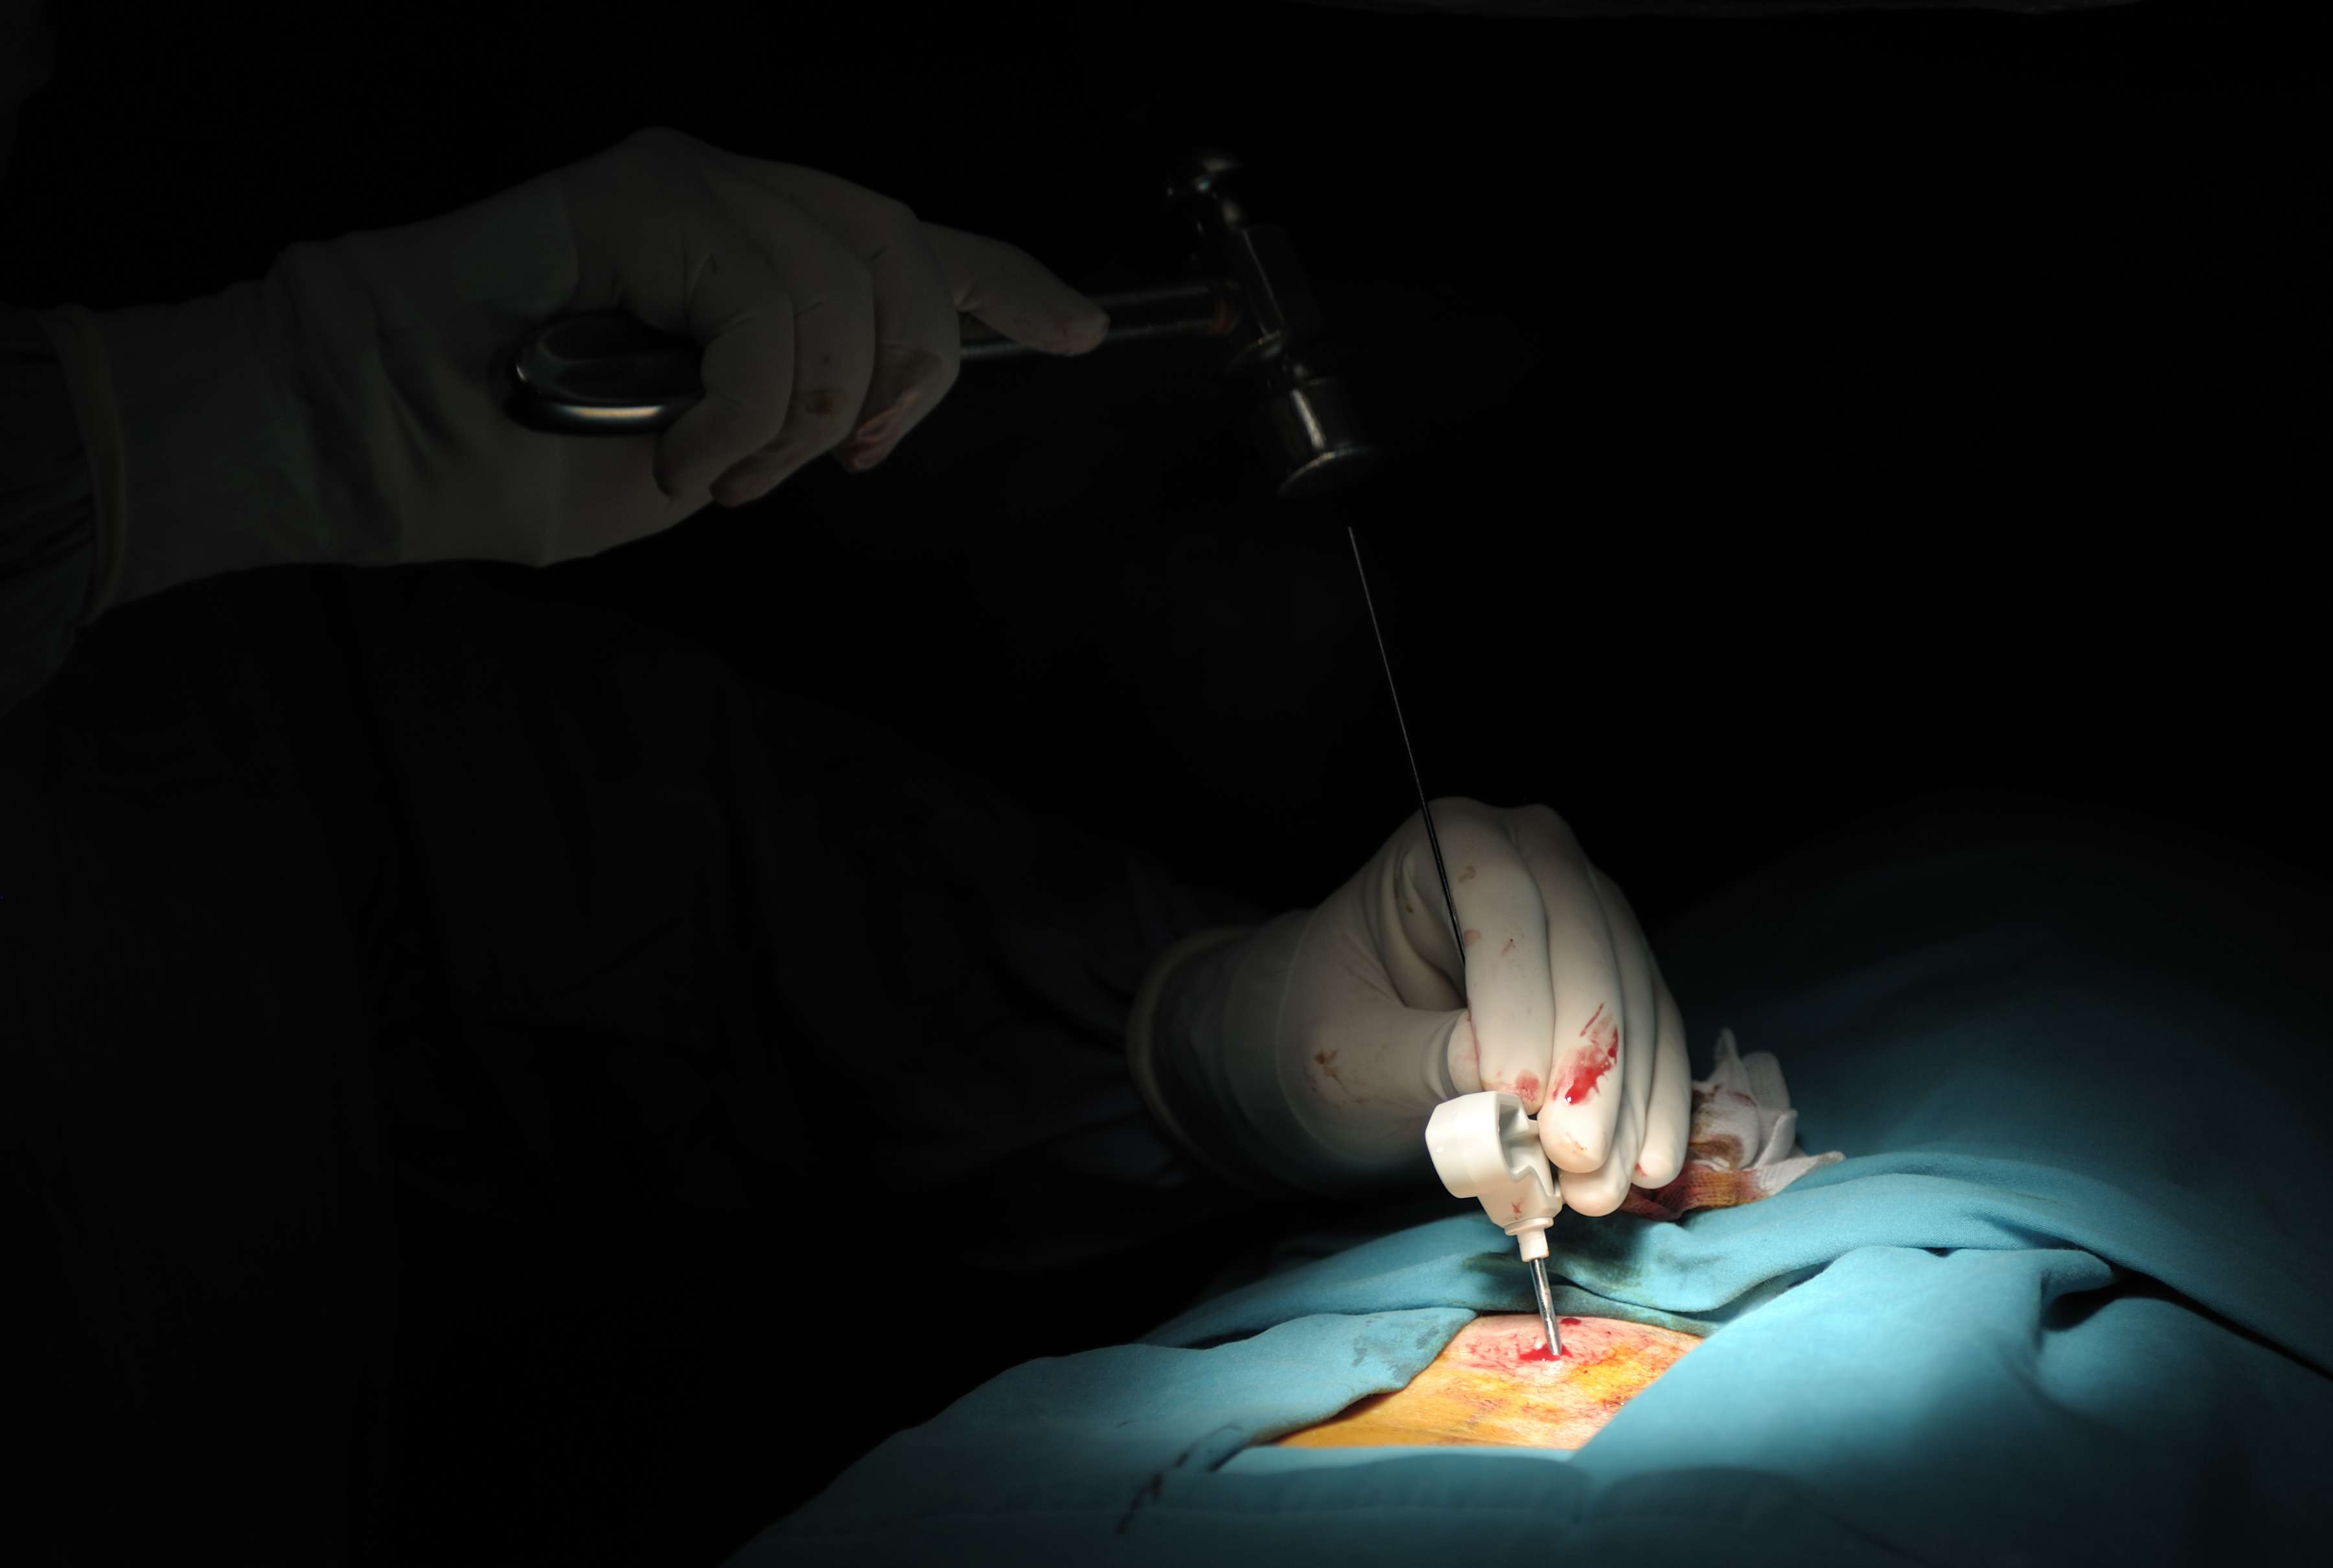 Surgeons hands operating on a patient